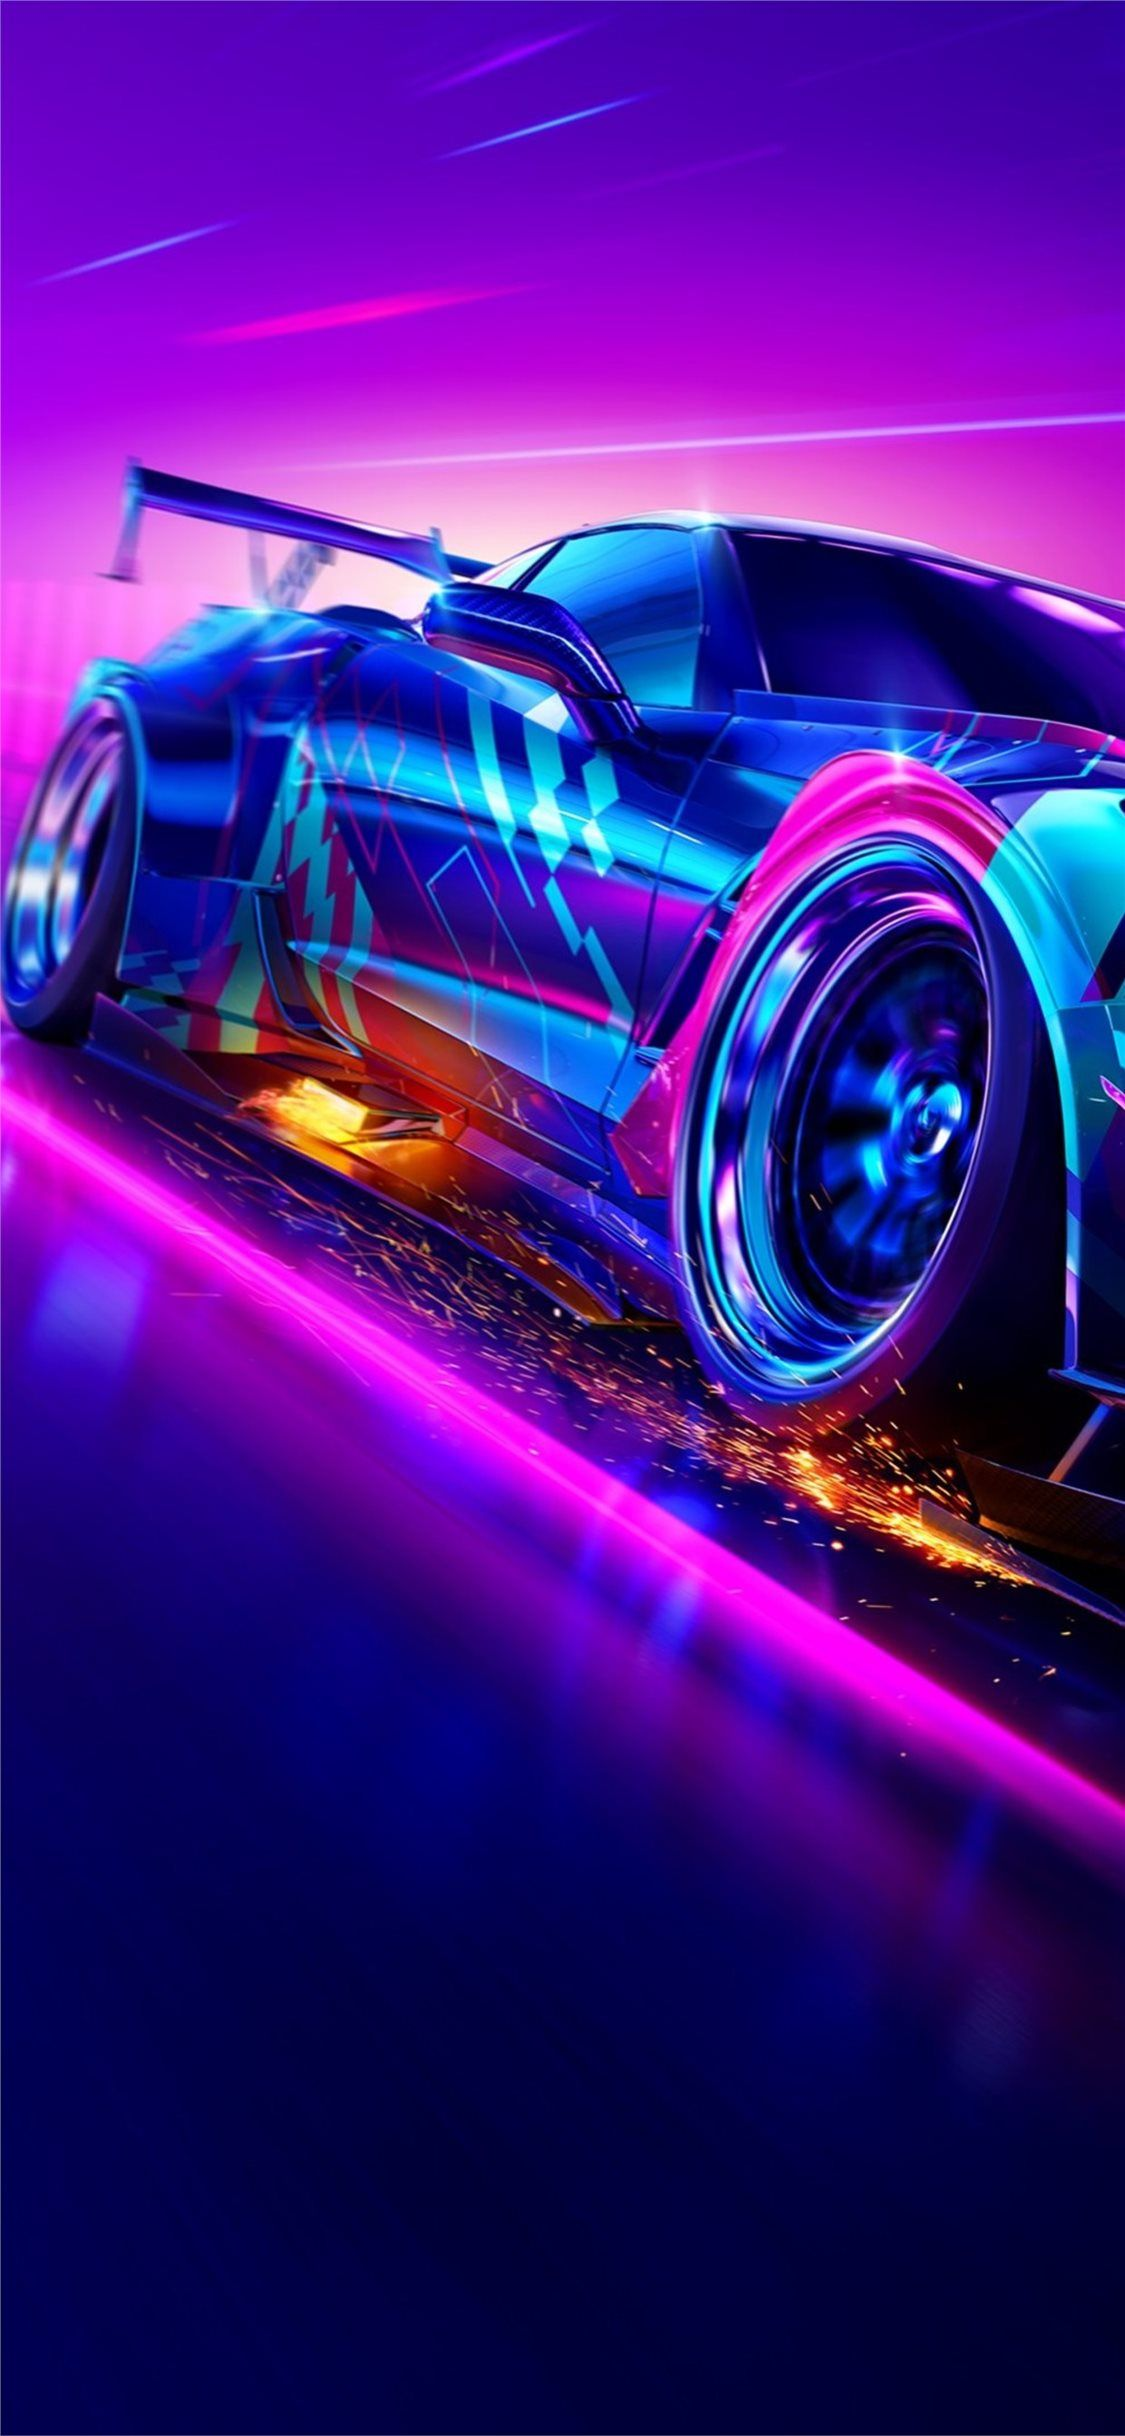 All 3d 60 favorites abstract animals anime art black cars city dark fantasy flowers food holidays love macro minimalism motorcycles music nature other smilies space sport technologies textures vector words Nfs Heat Car Wallpaper 4k